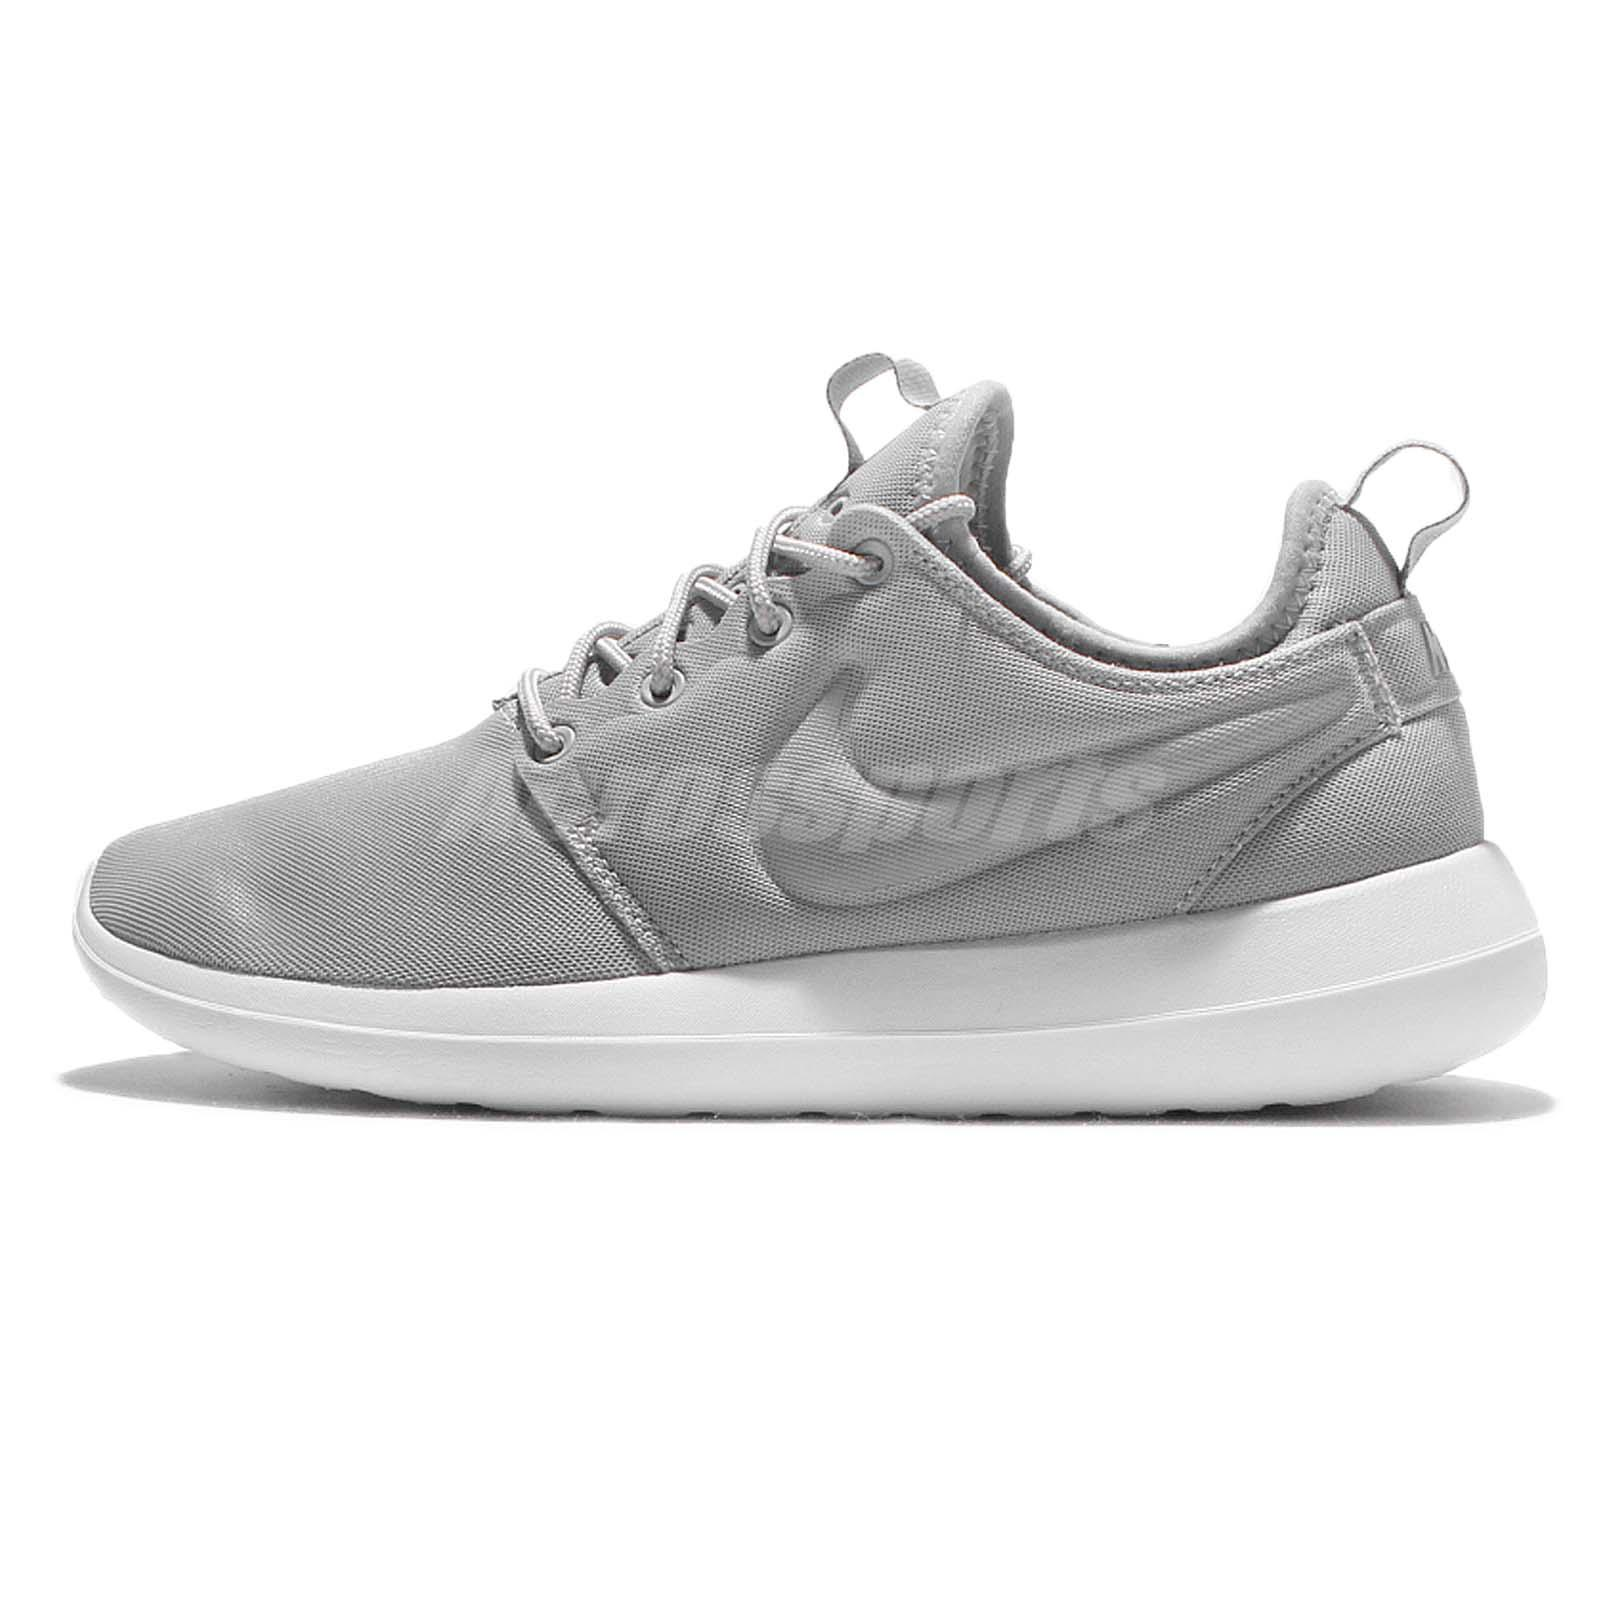 70d8372d053 ... coupon code wmns nike roshe two 2 rosherun wolf grey women running shoes  sneakers 844931 001